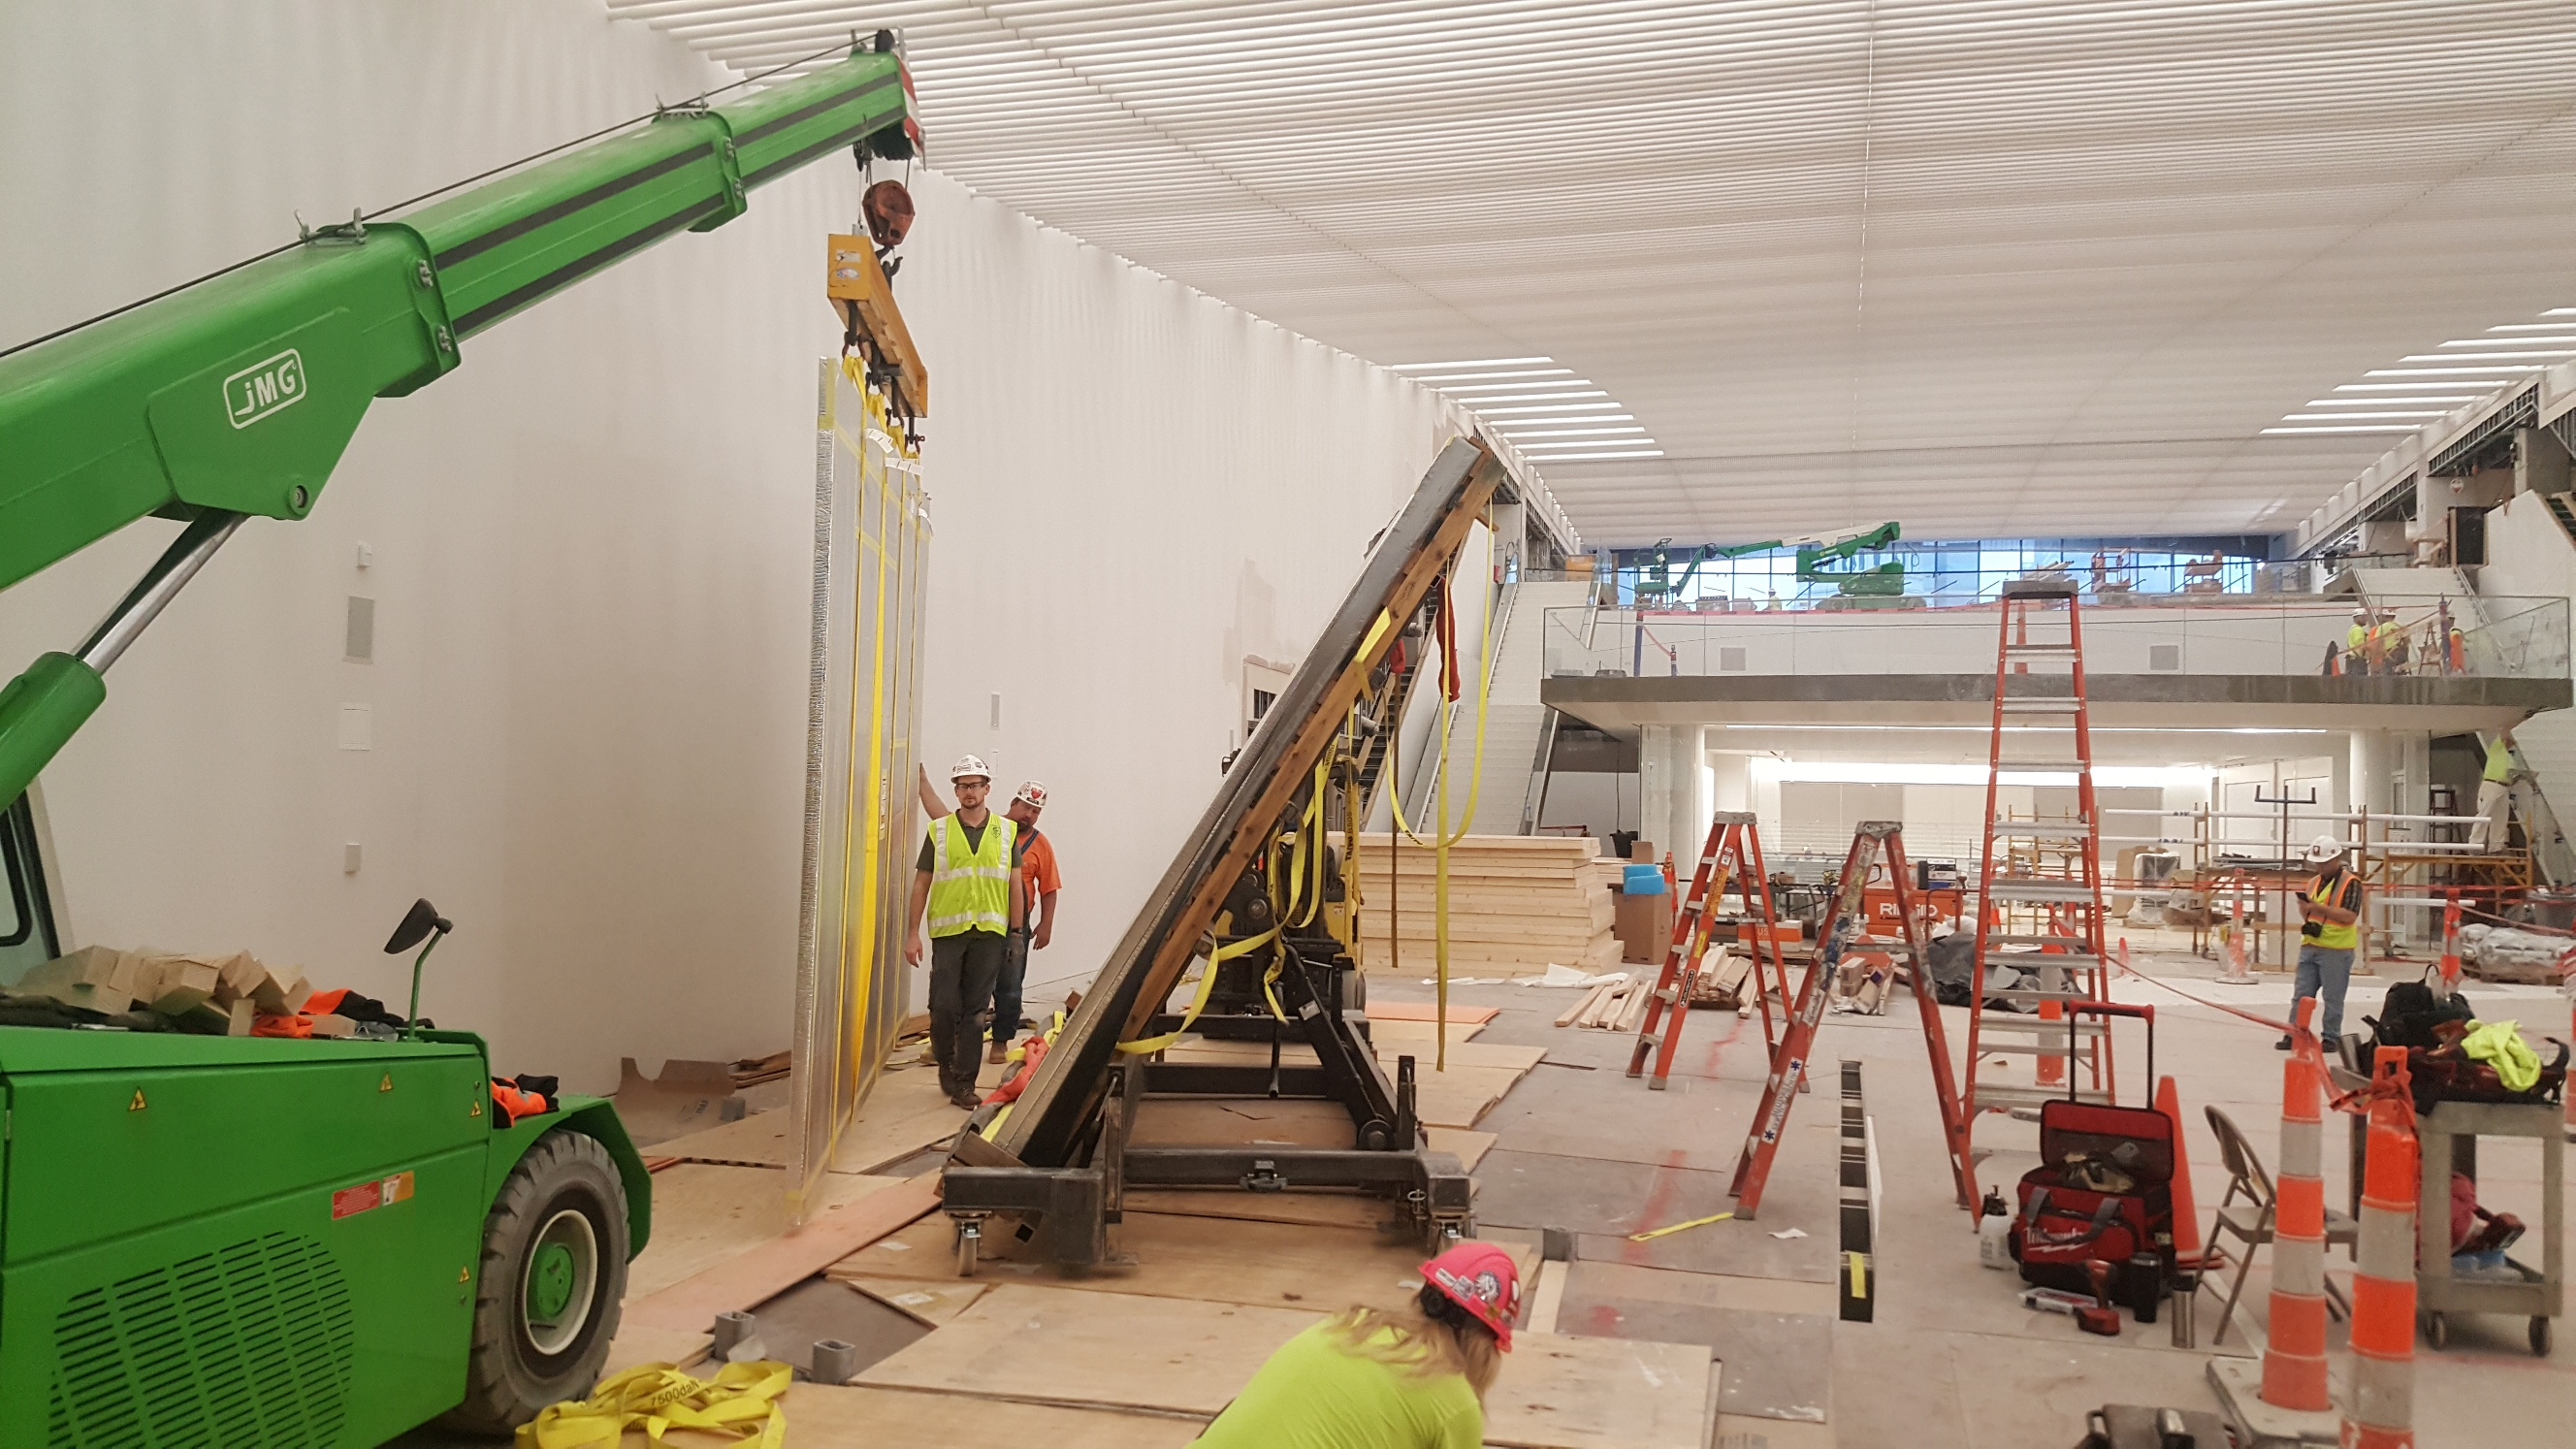 CSC uses an electric mini crane to hoist the first screen into place.